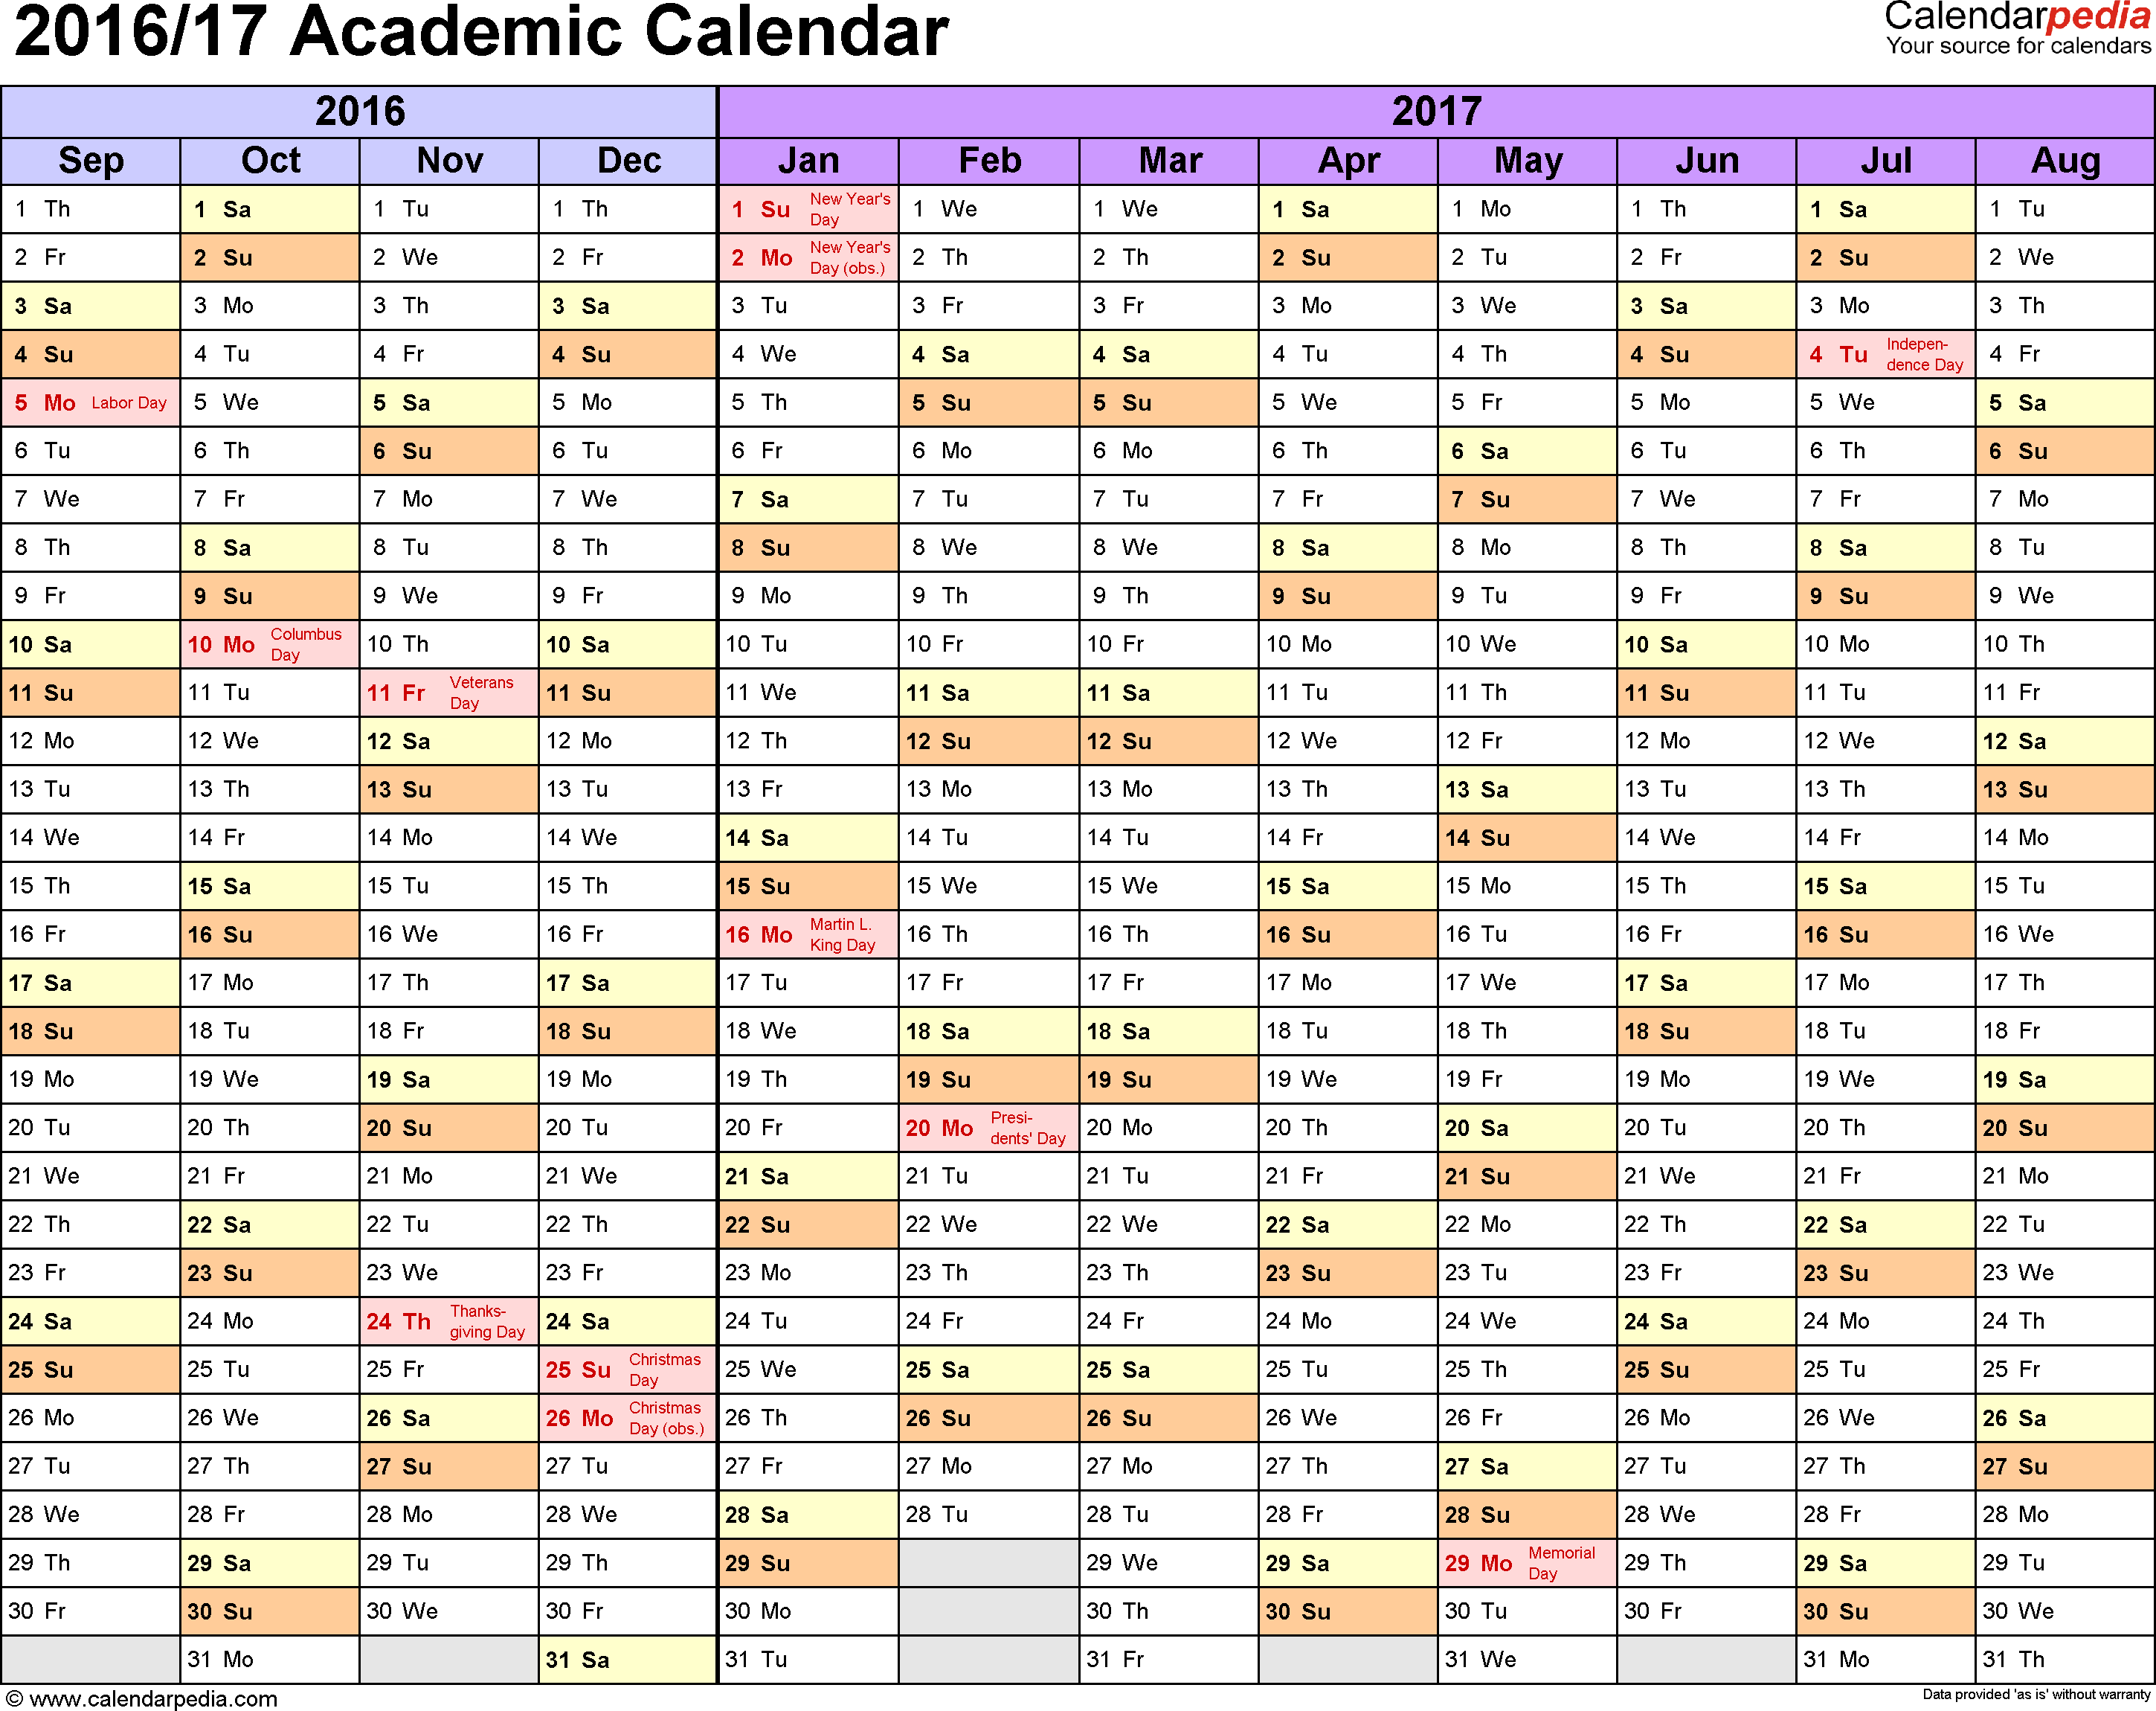 Download Template 1: Academic calendar 2016/17 for Microsoft Excel (.xlsx file), landscape, 1 page